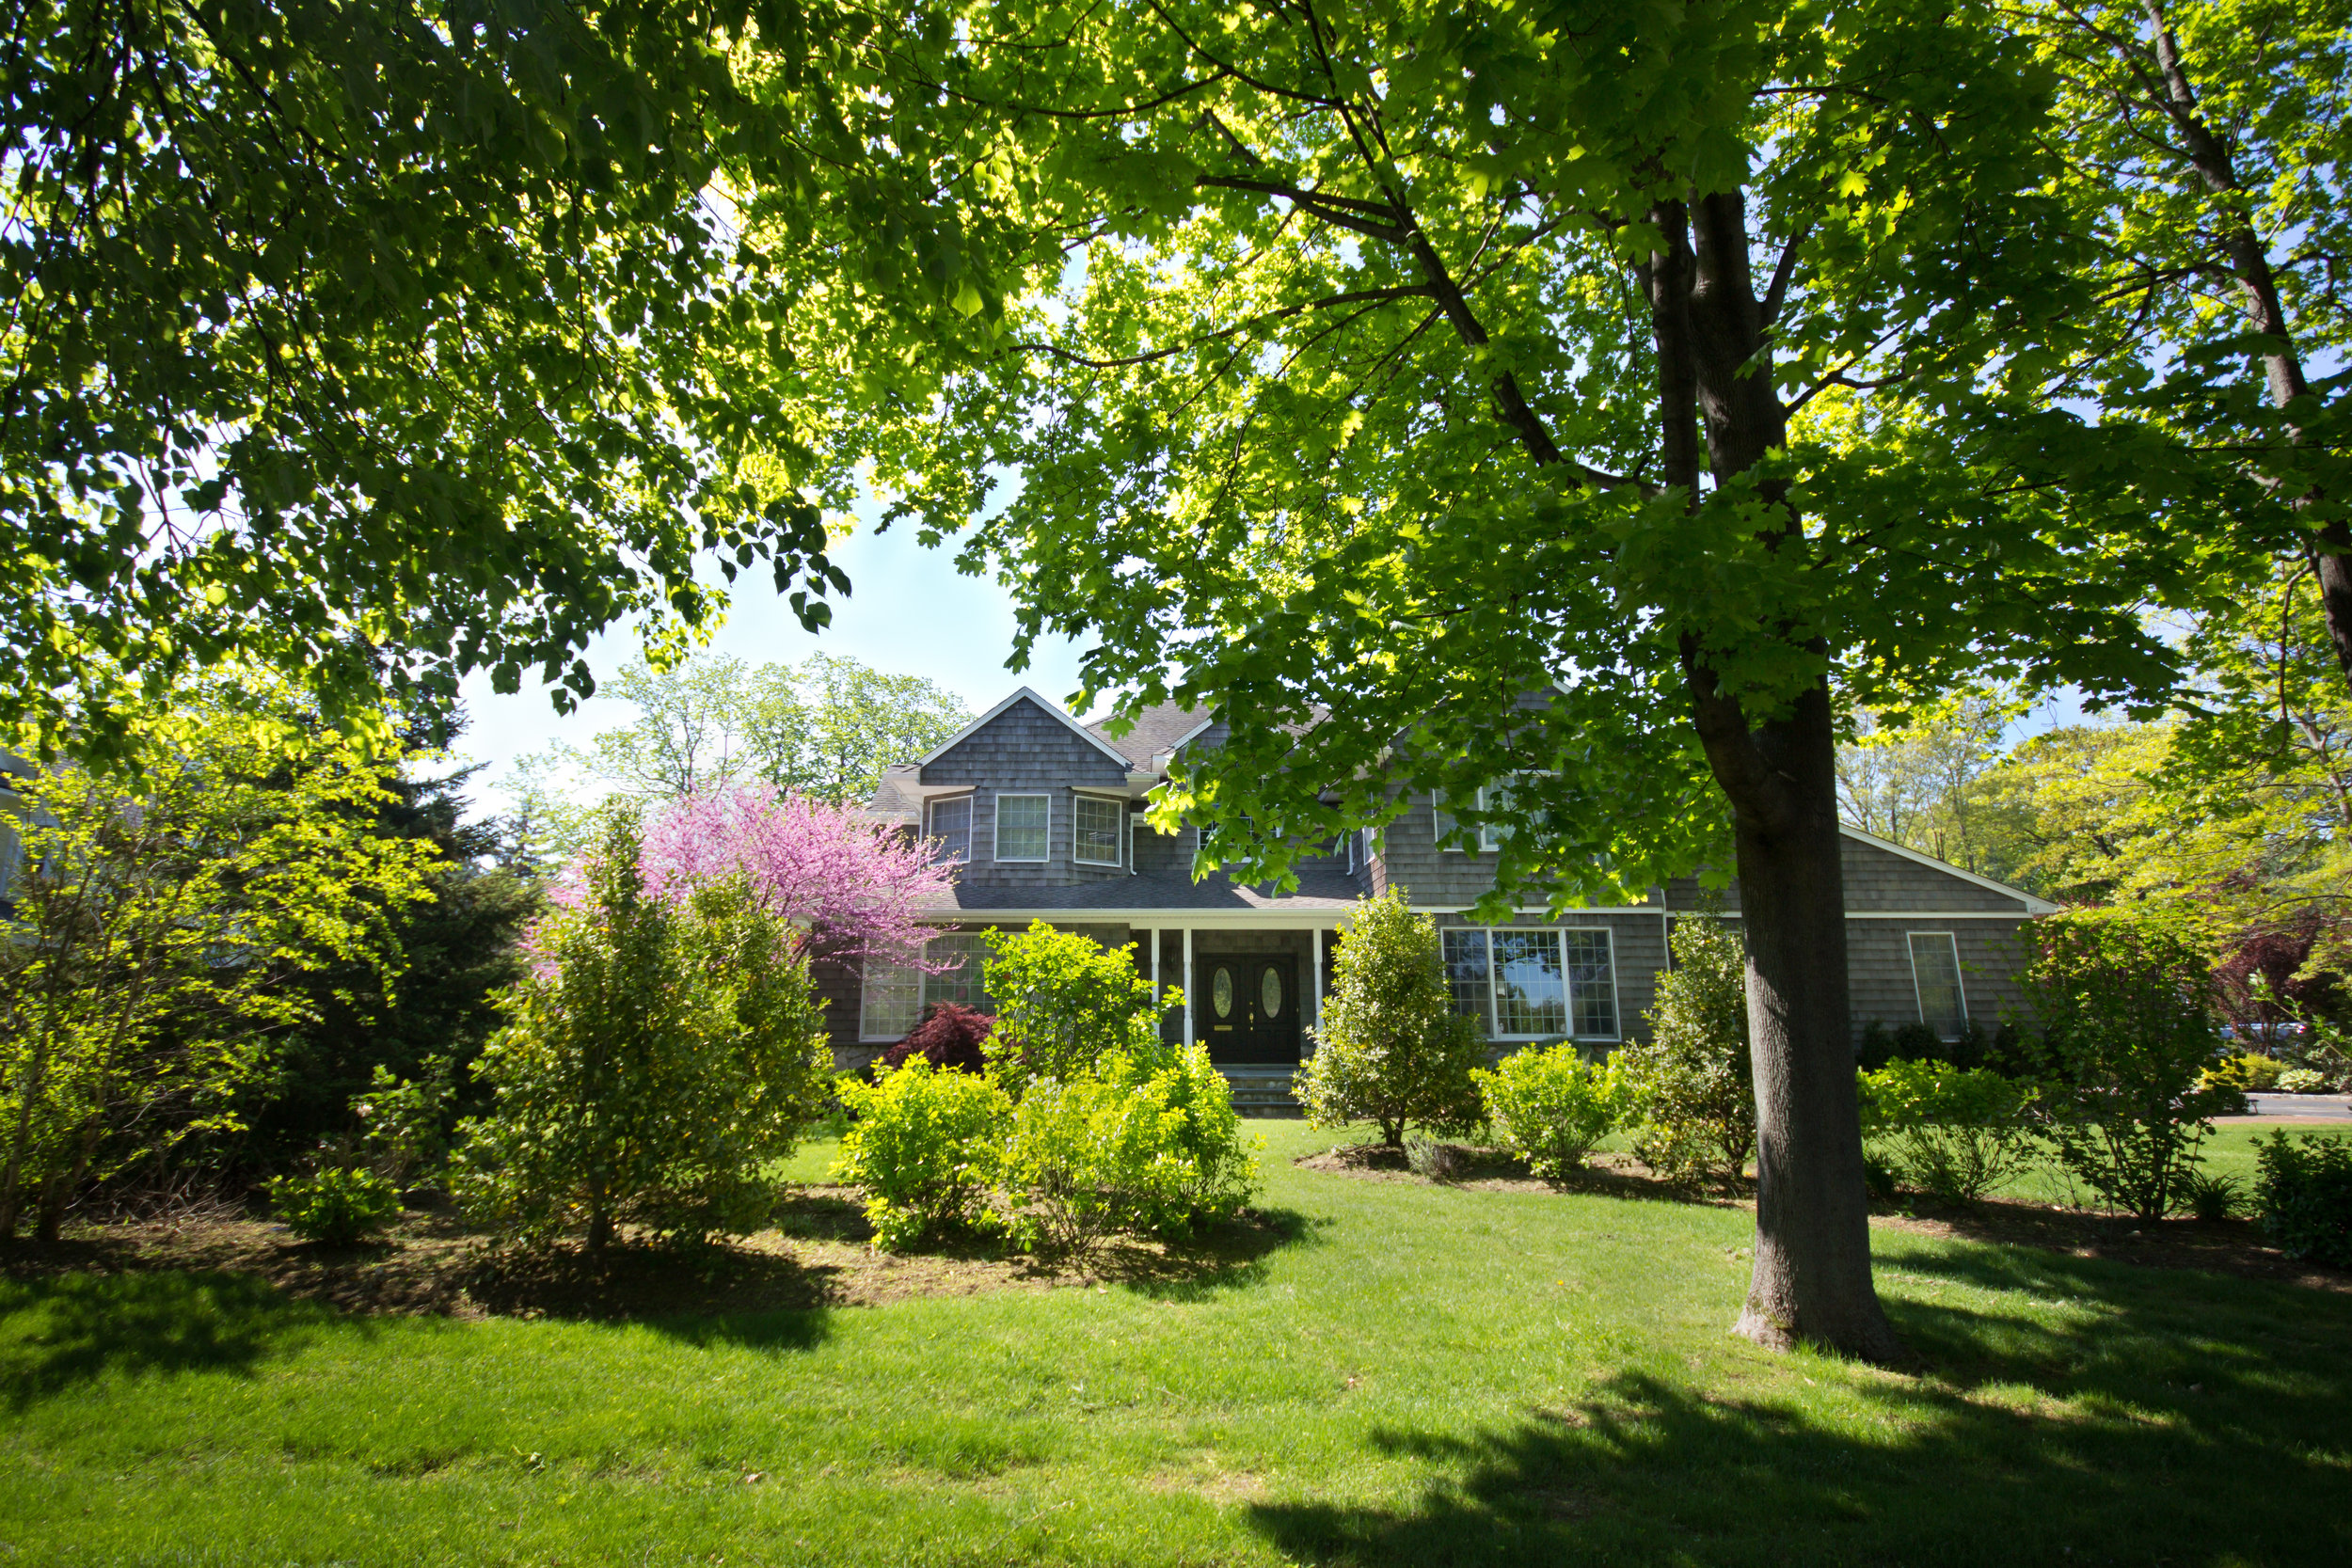 5 Fast-Growing Shade Trees from Our Wholesale Nursery in the Ulster County, NY, Area